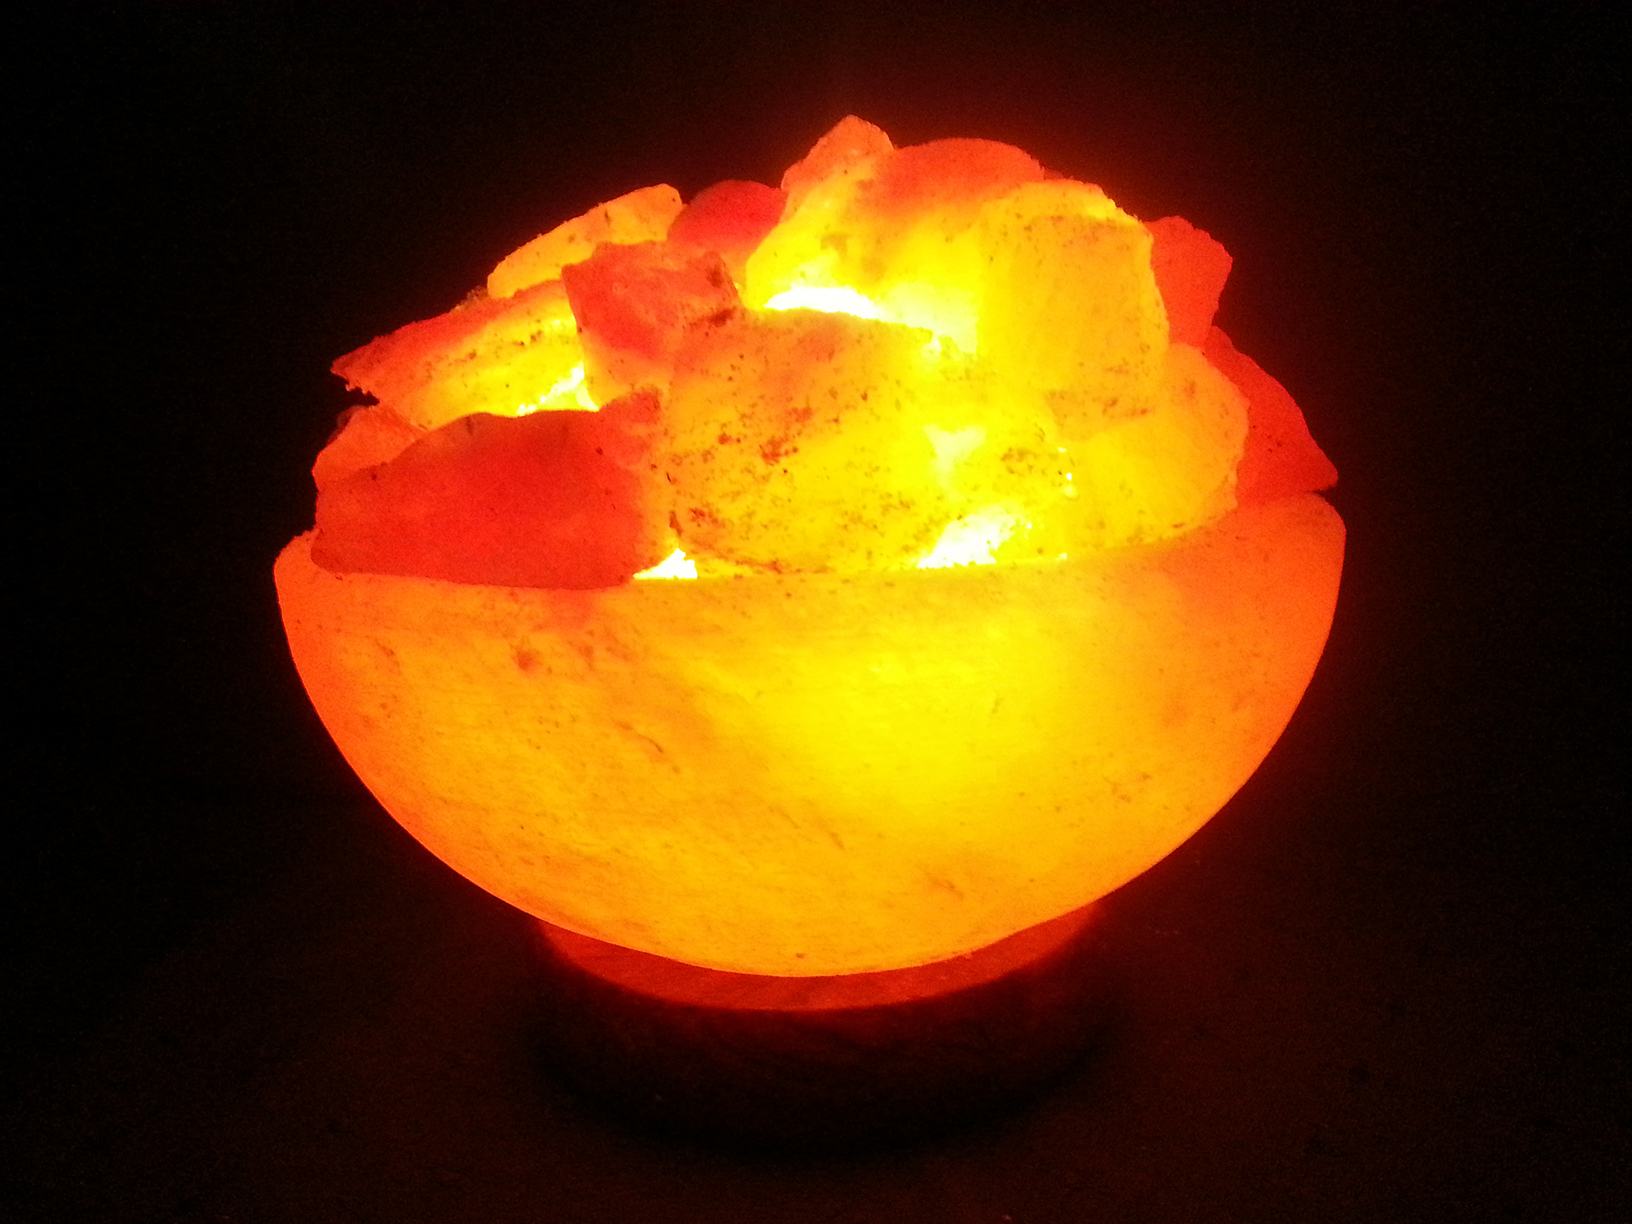 Fire Bowl Salt Lamp - Small 3-4kg